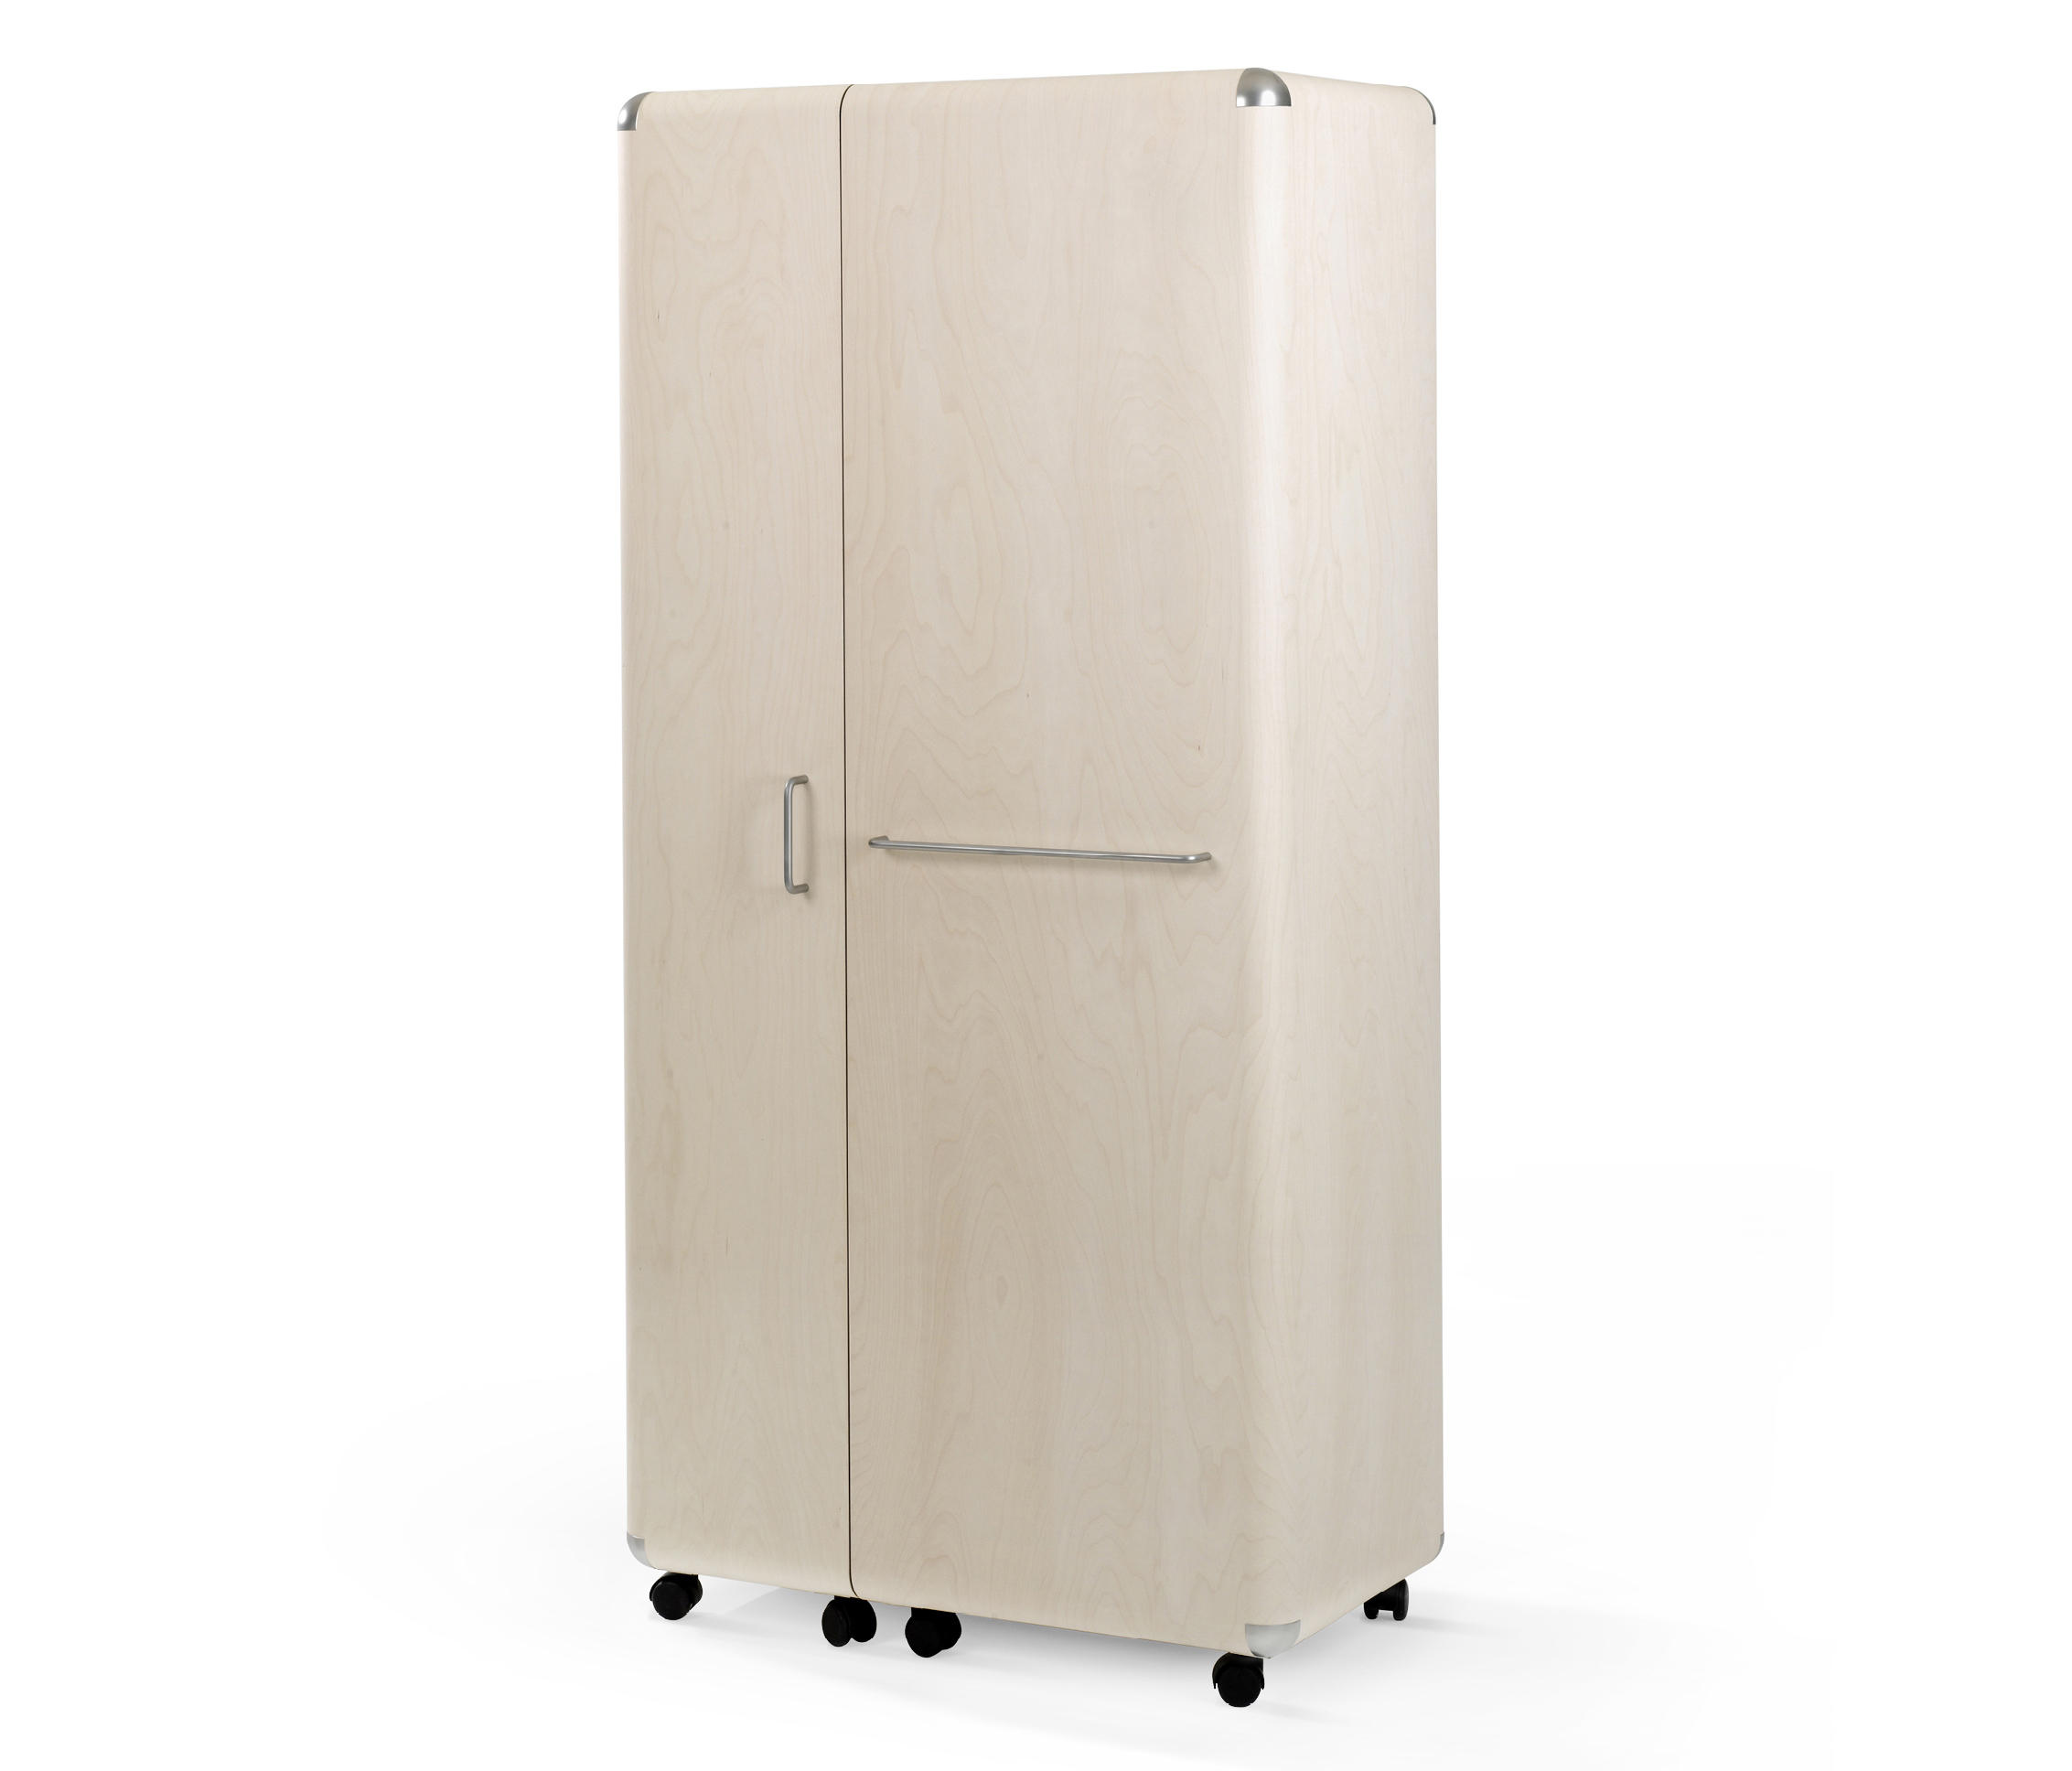 Aktenschrank design  SHELL - Cabinets from Röthlisberger Kollektion | Architonic